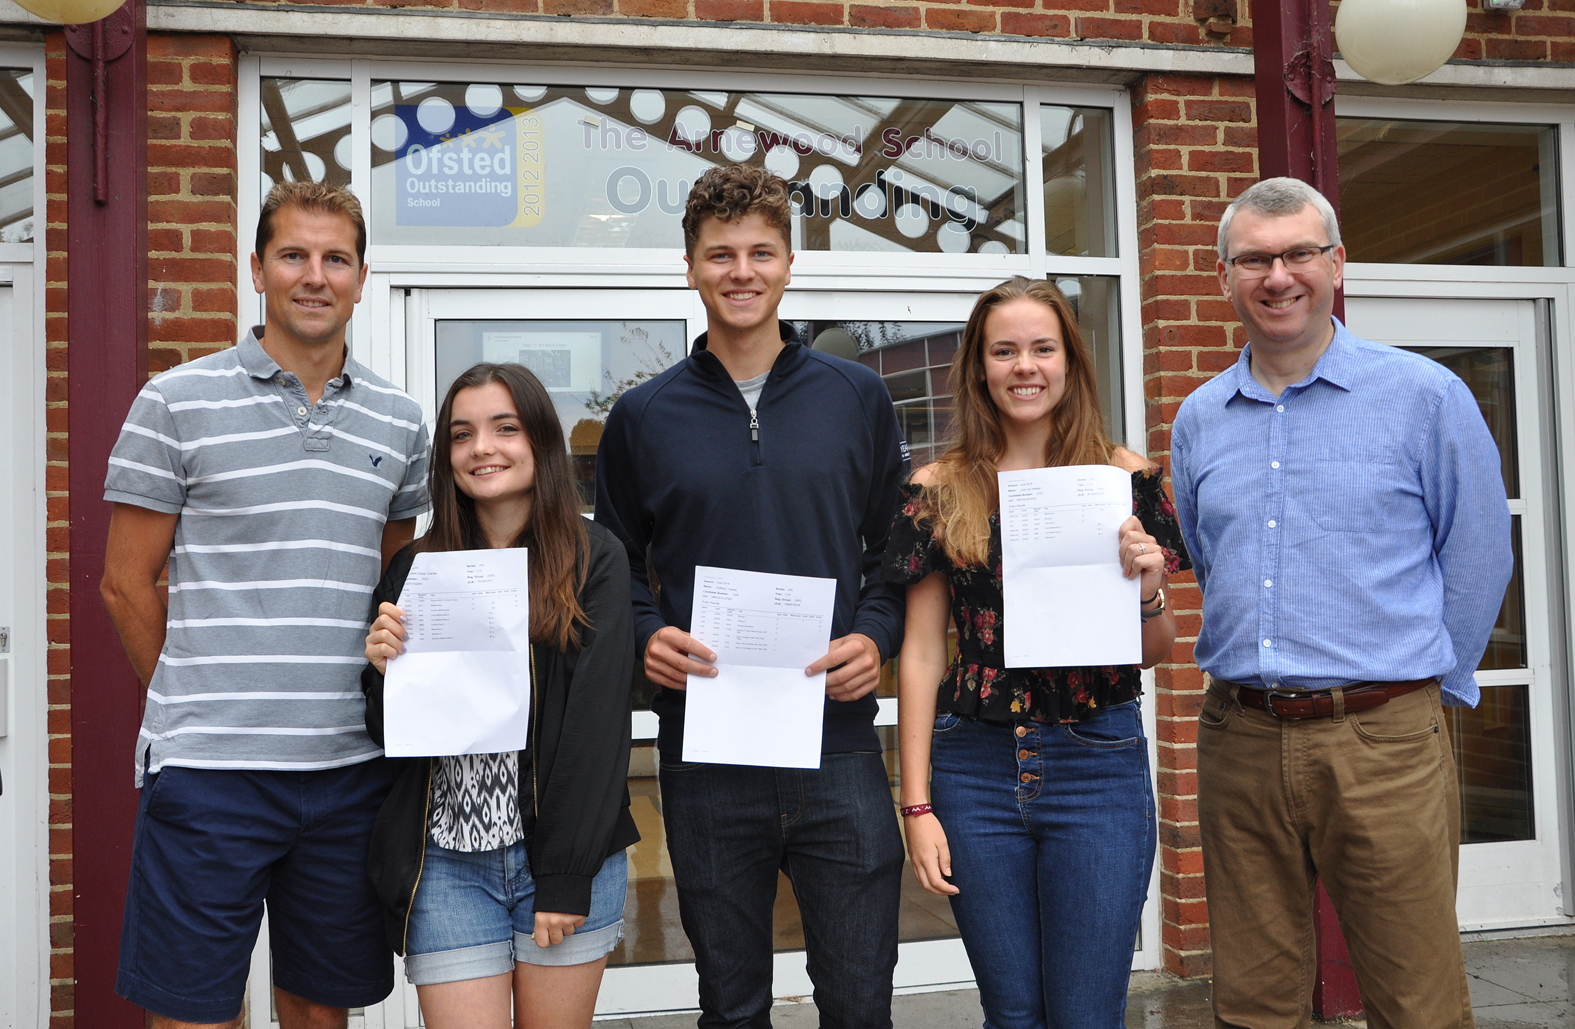 Head of Sixth Form and Arnewood Headteacher celebrate A-level Results with students